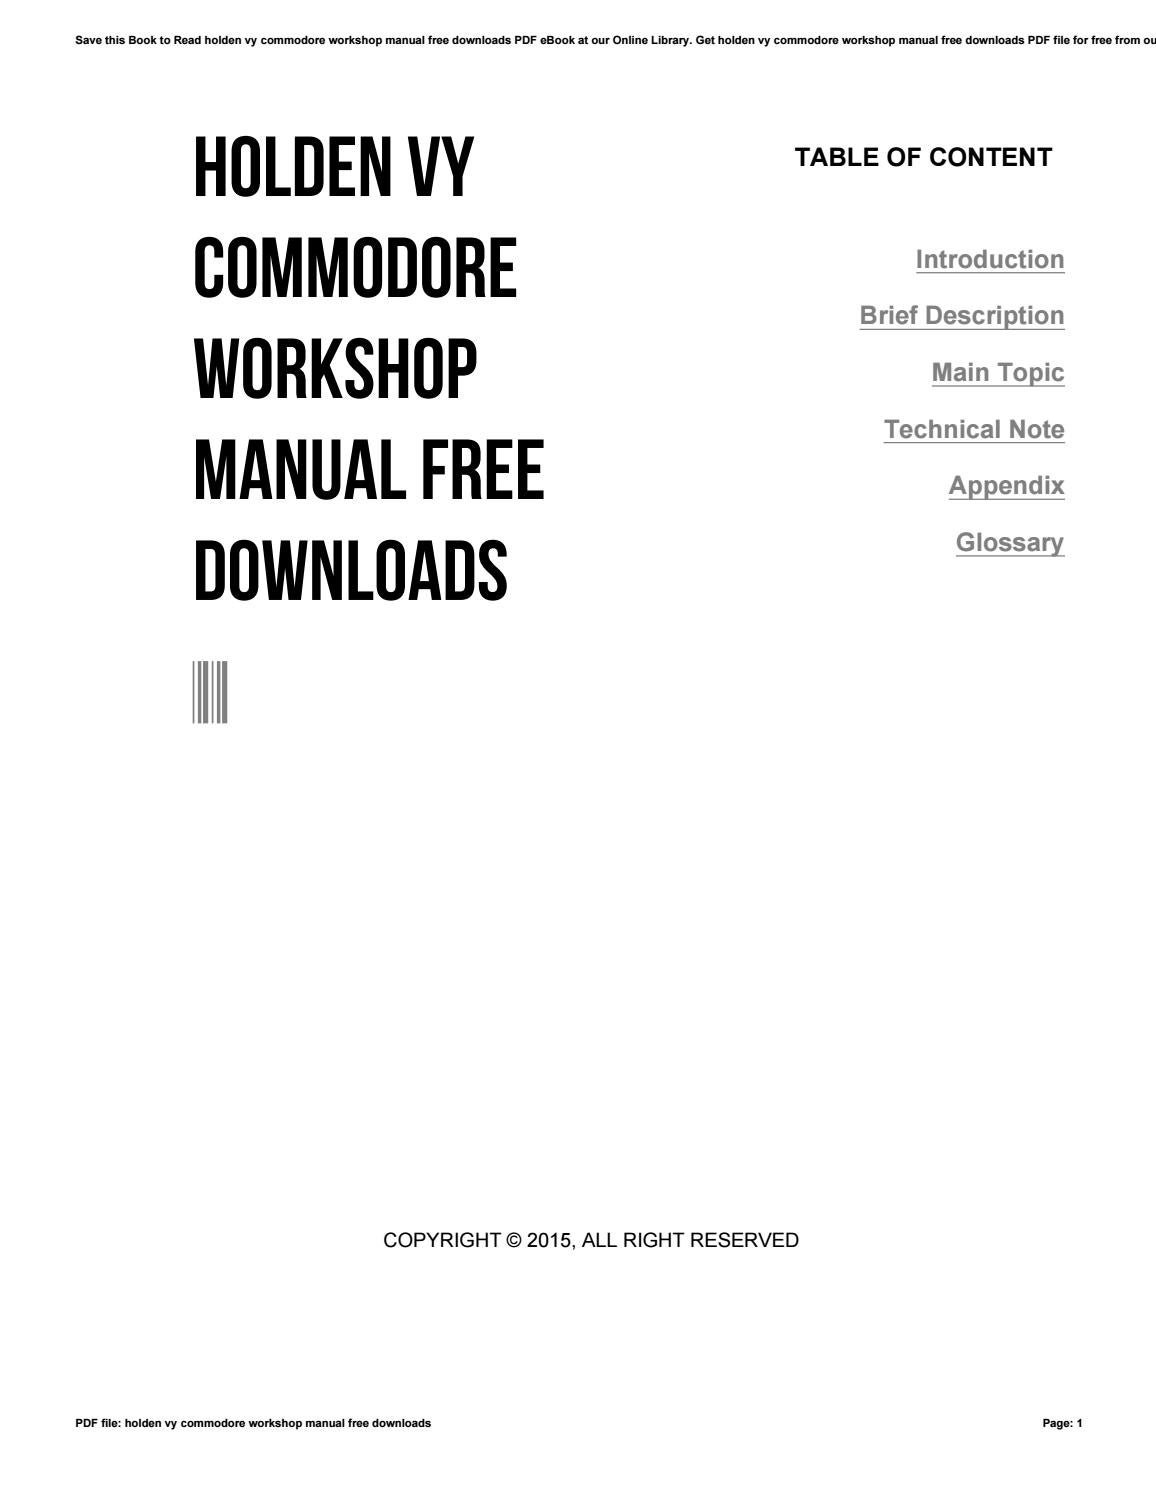 Holden vy commodore workshop manual free downloads by harvard-ac-uk75 -  issuu